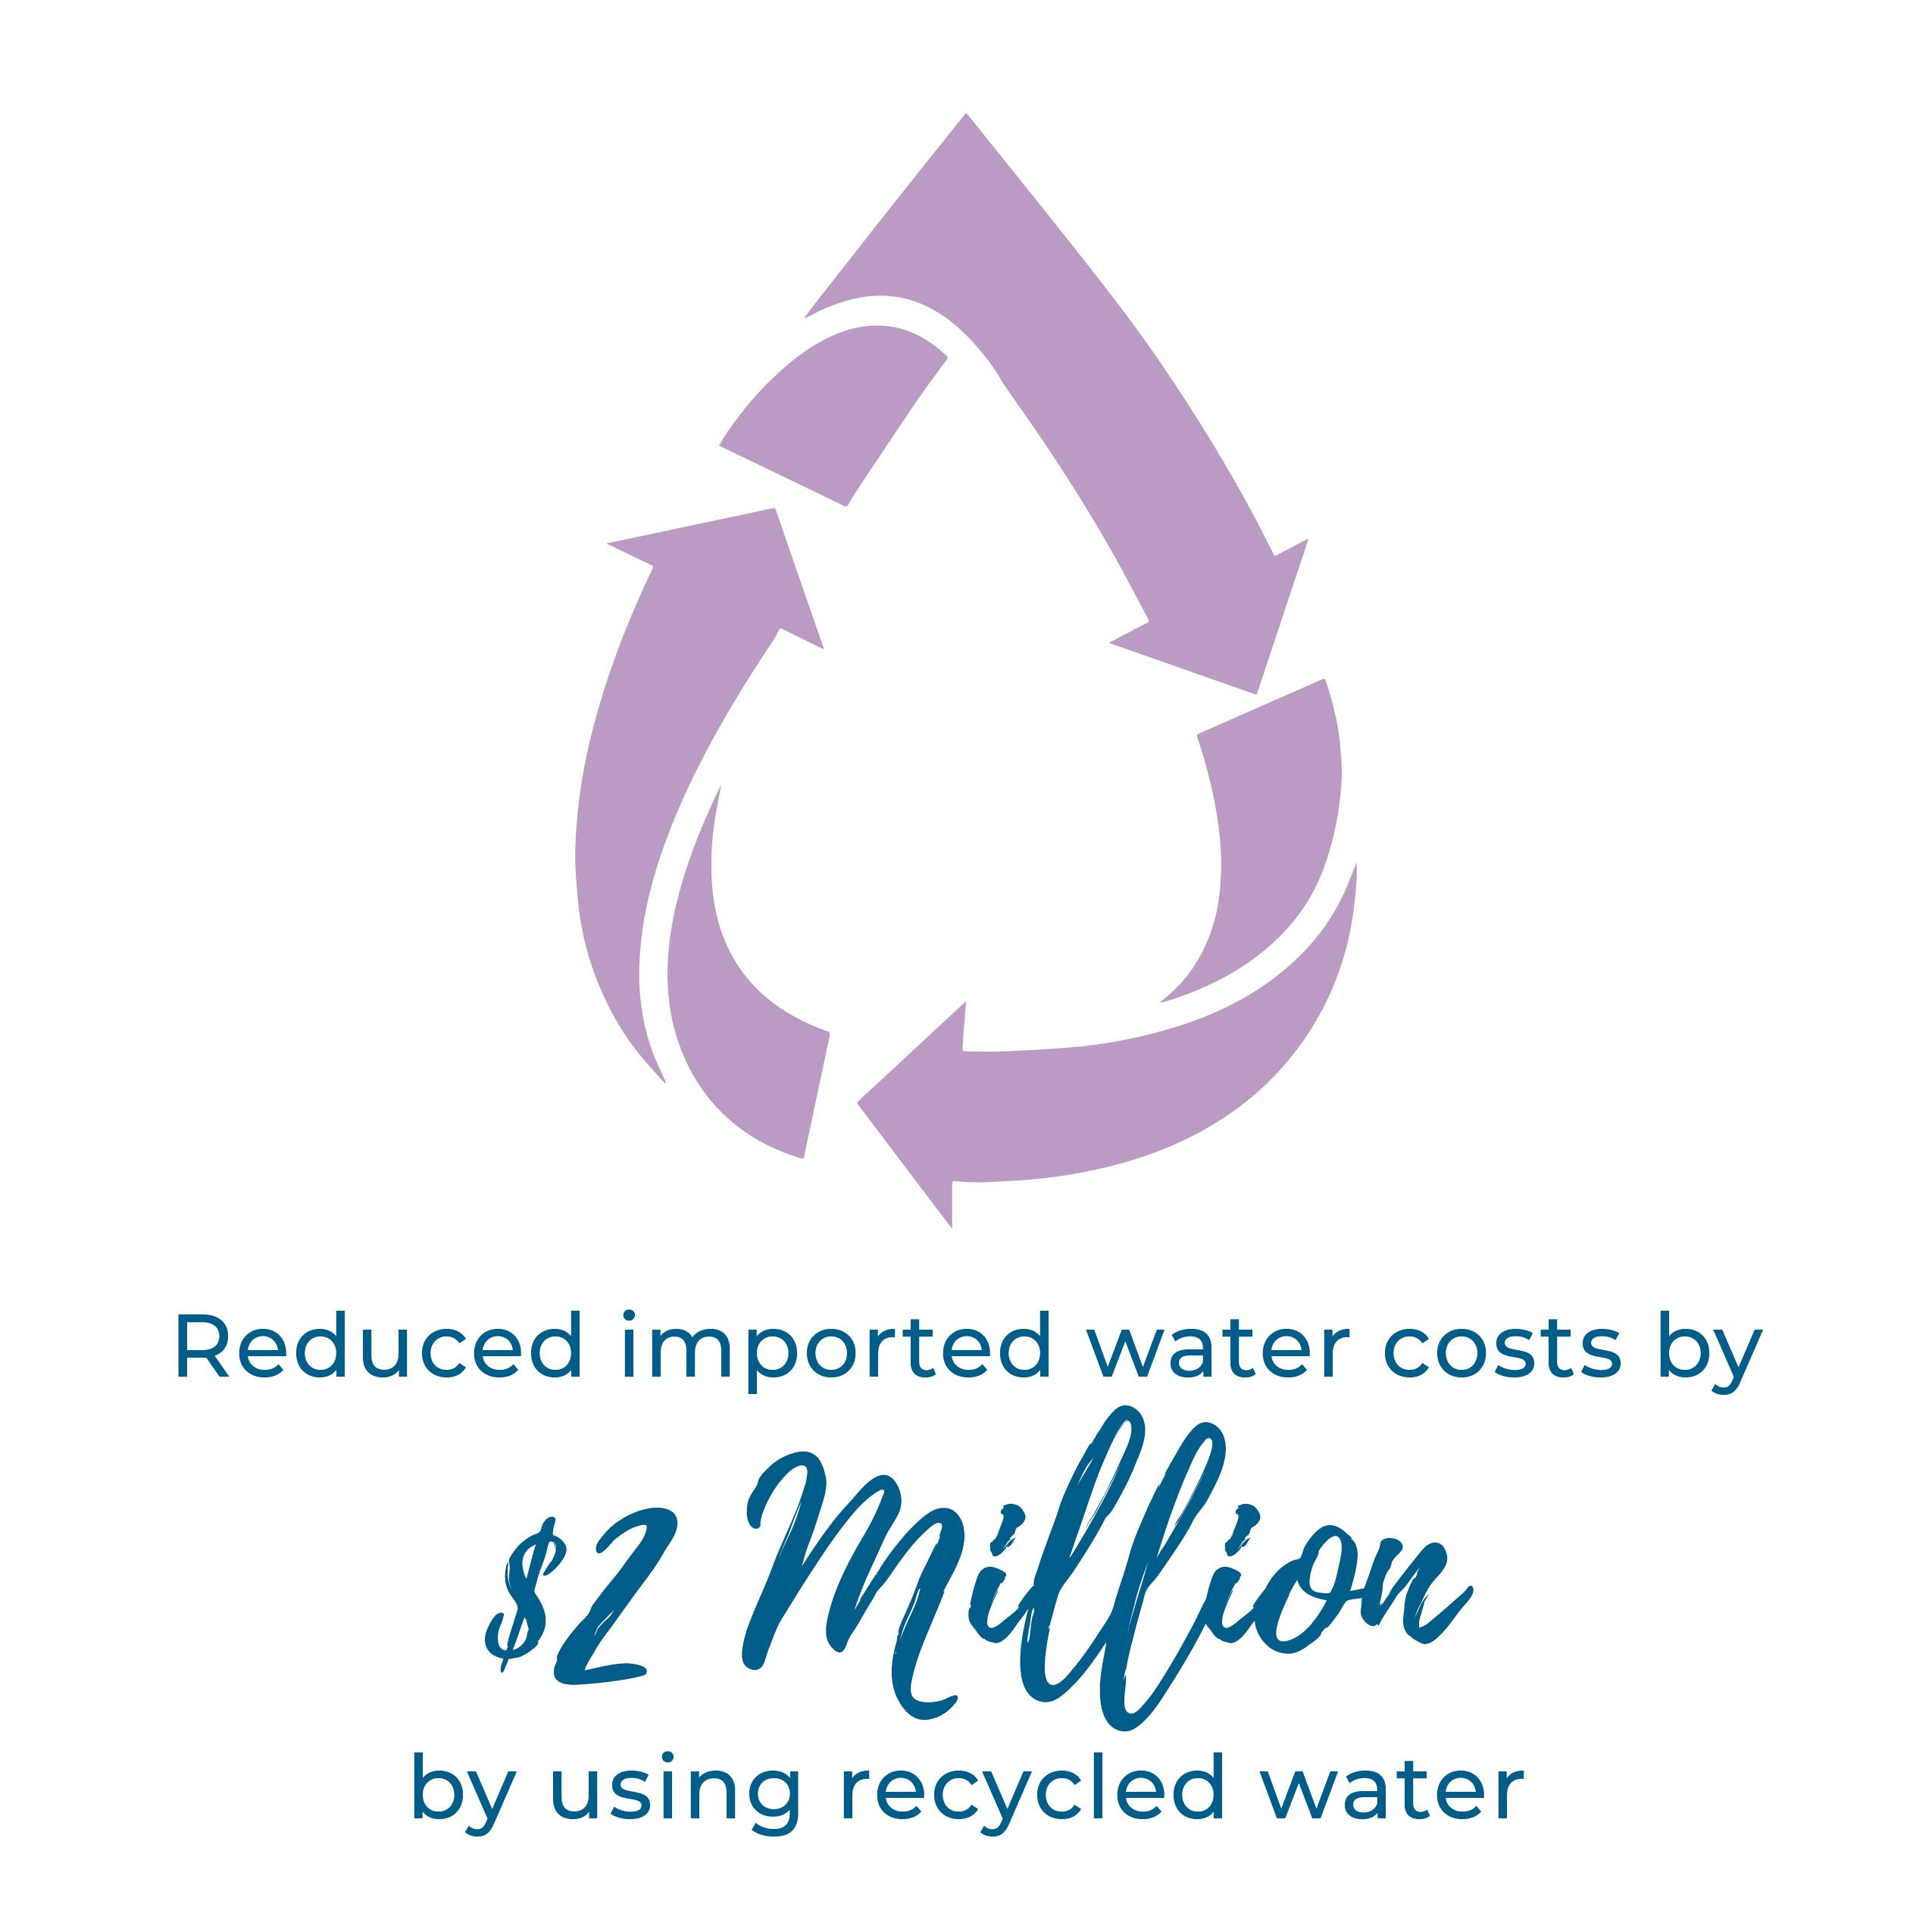 Reduced imported water costs by $2 million by using recycled water